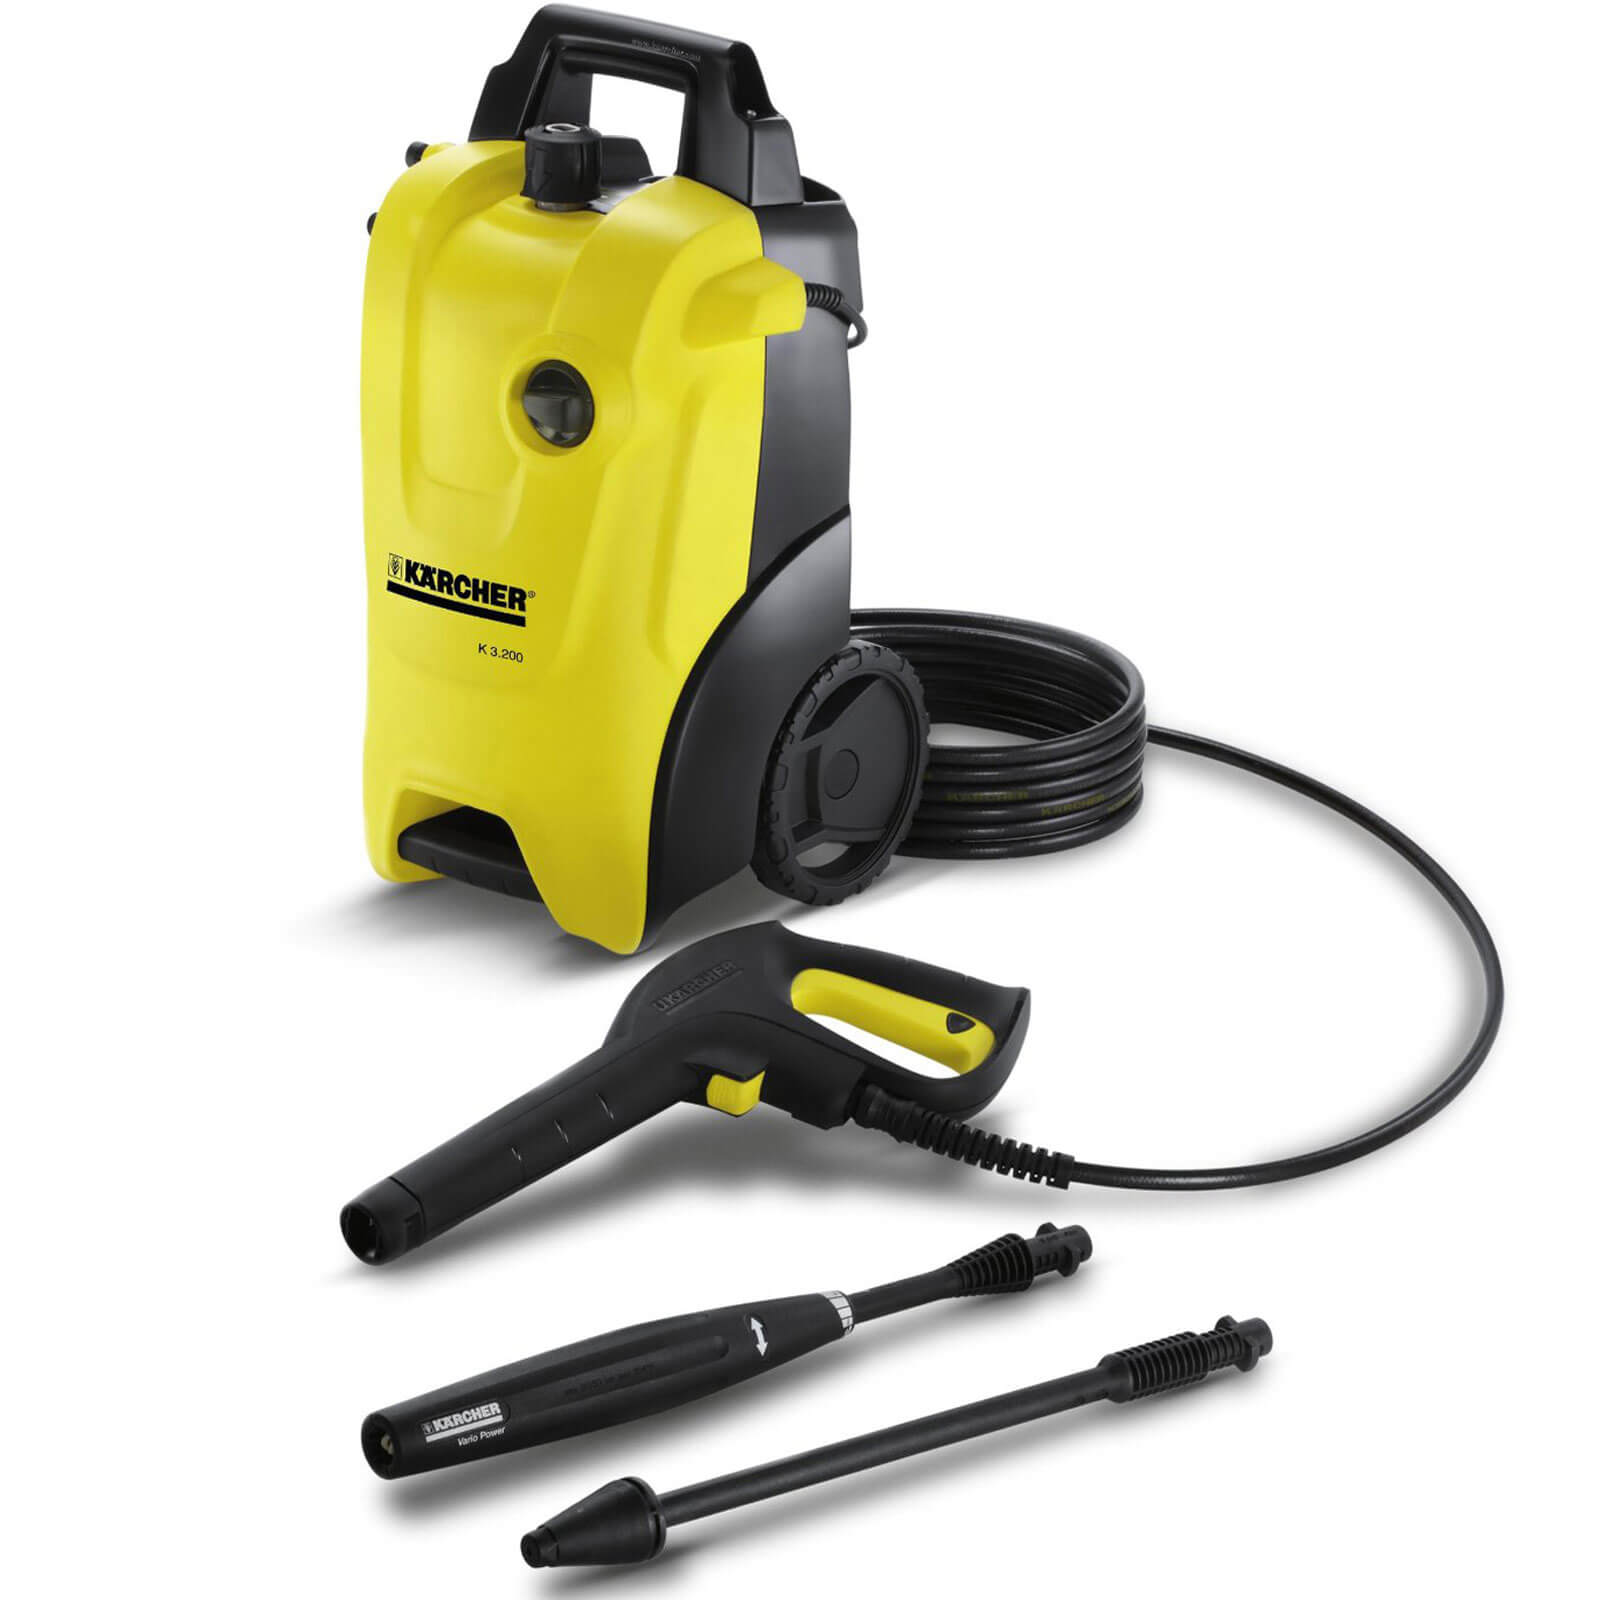 zzz karcher compact water cooled pressure washer 120 bar. Black Bedroom Furniture Sets. Home Design Ideas